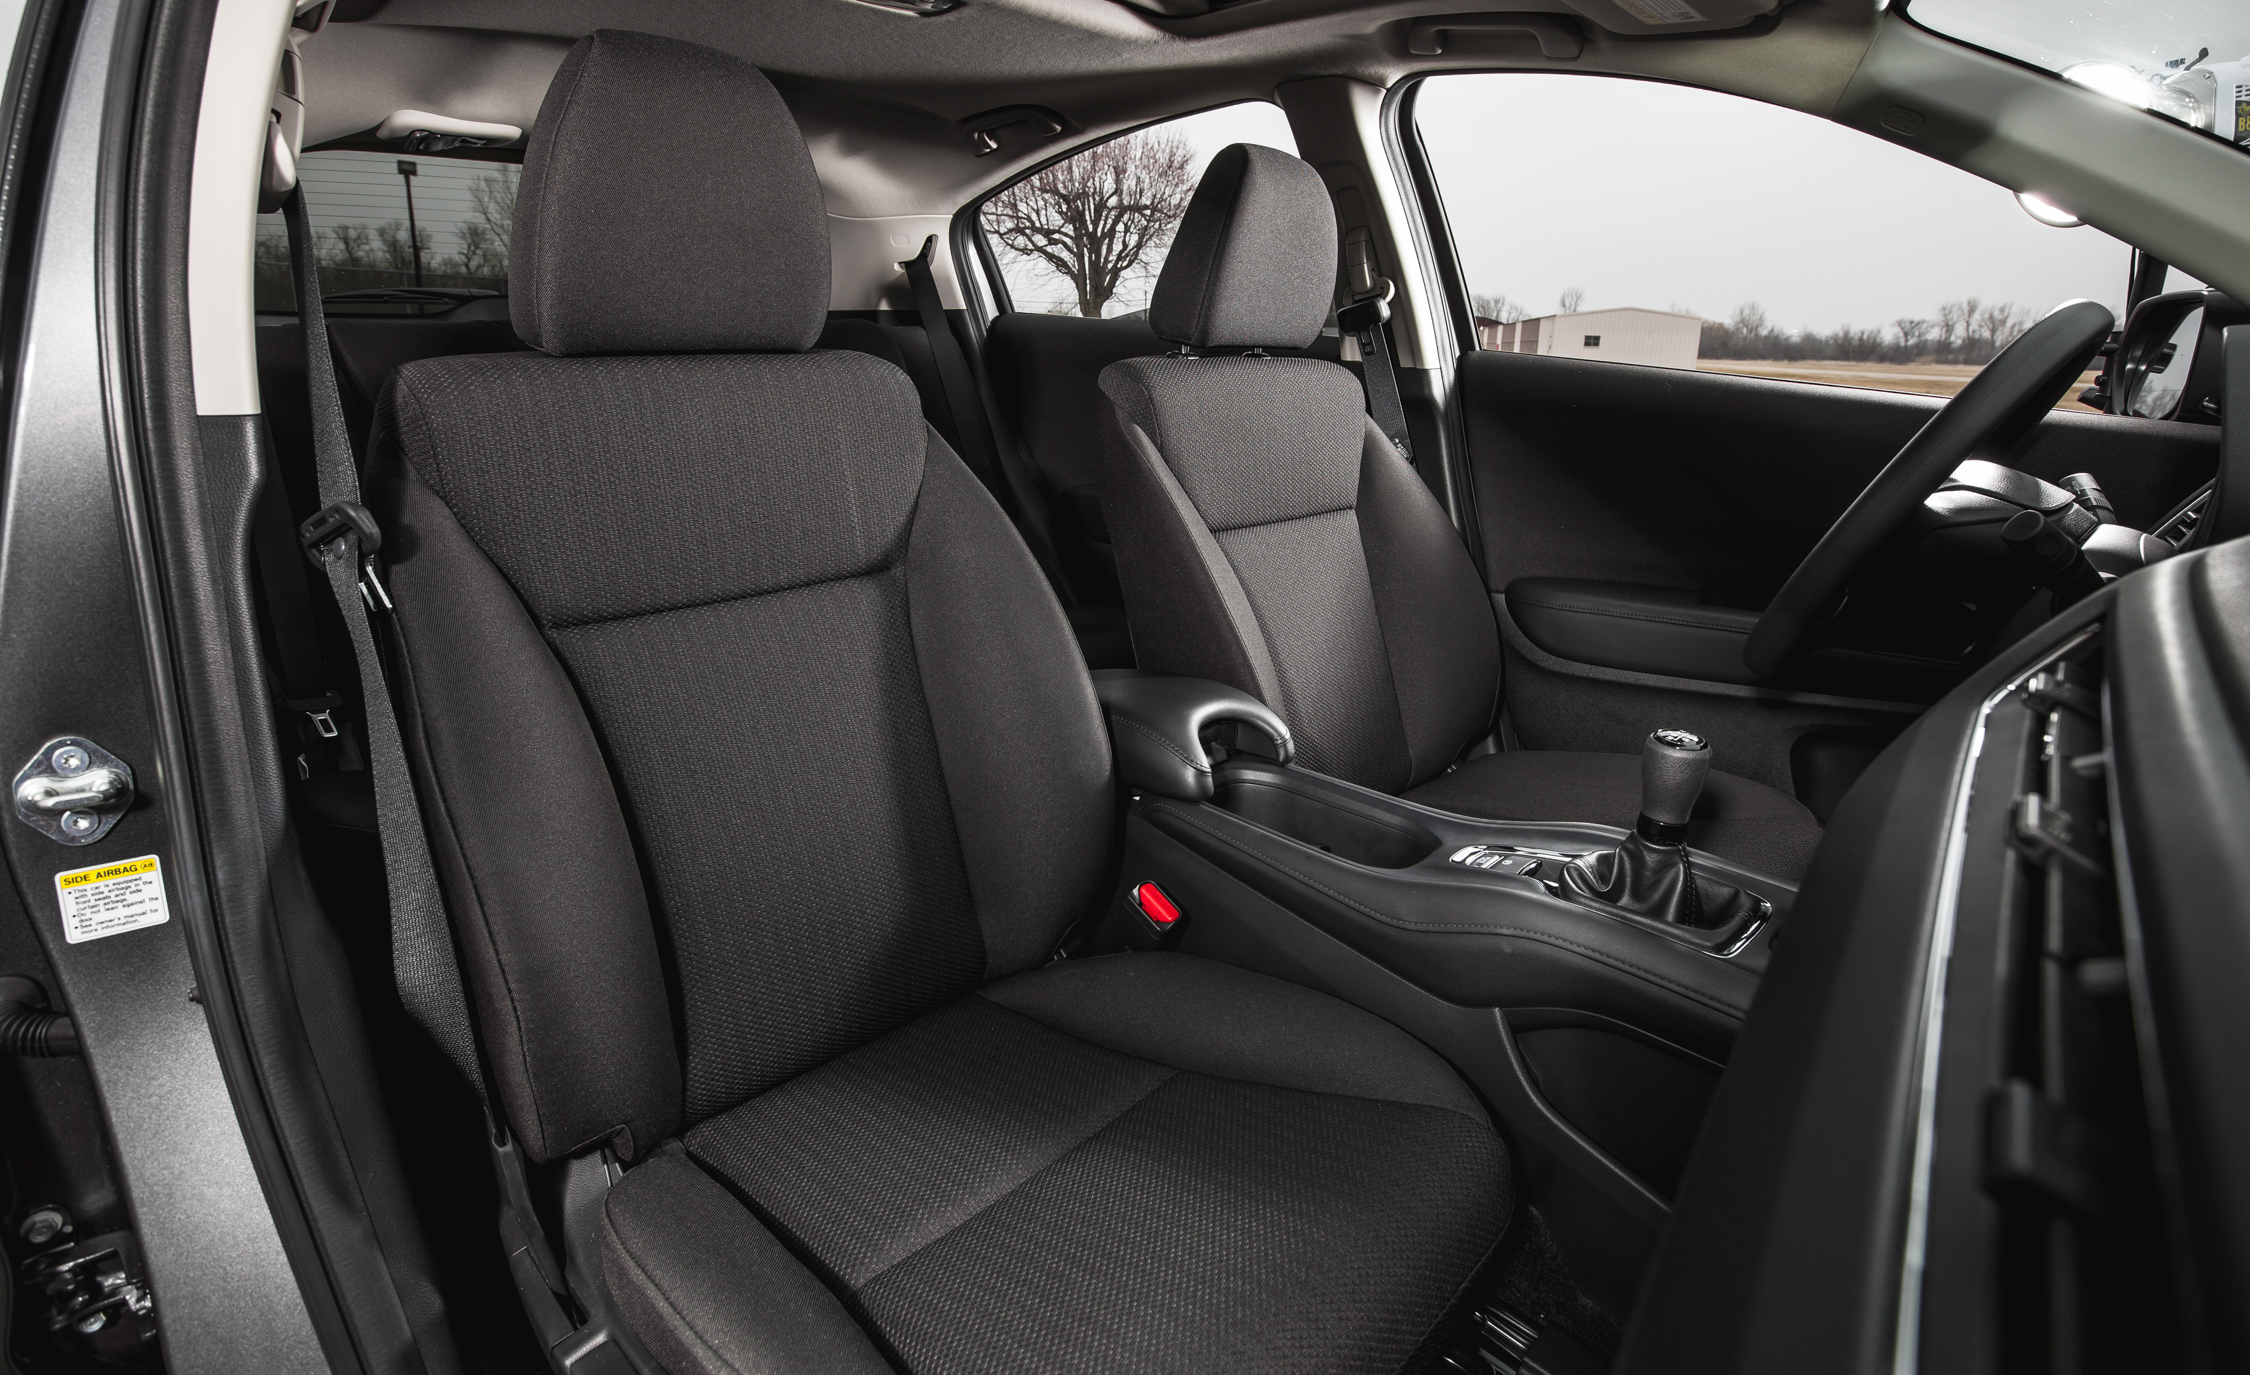 2016 Honda HR-V Interior Front Seats